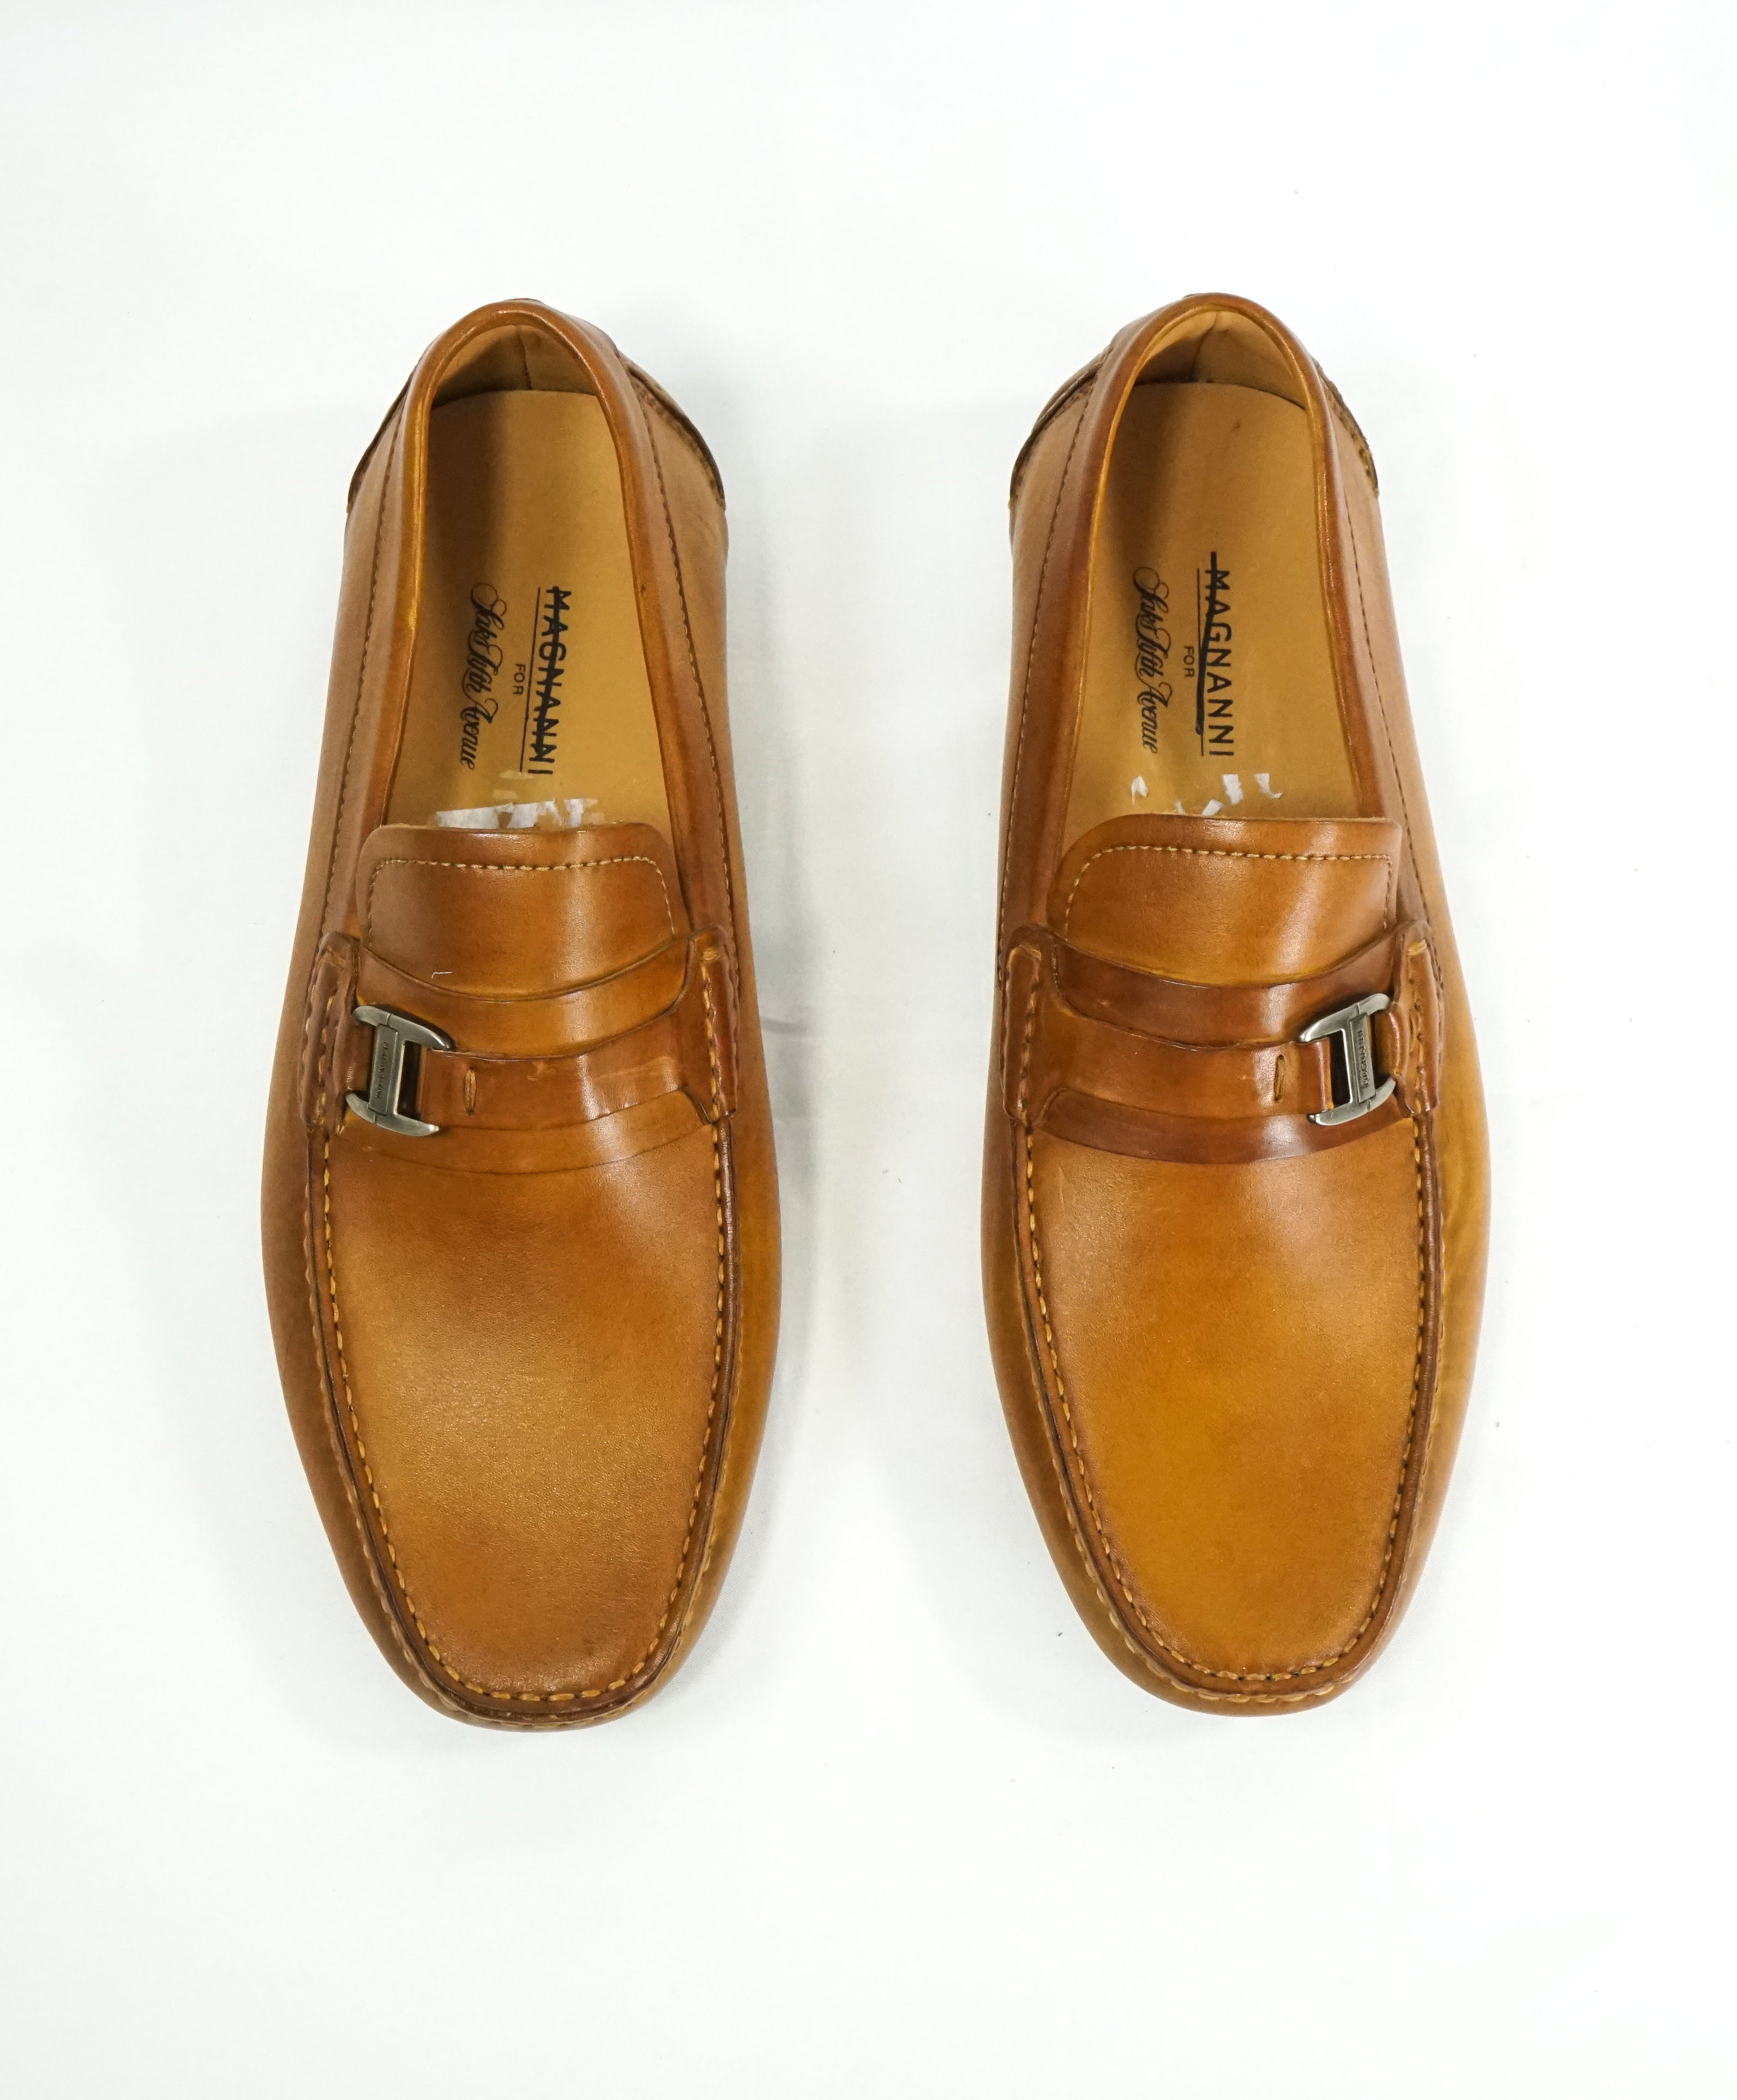 MAGNANNI - Classic Brown Bit Leather Loafers W Rubber Sole - 8